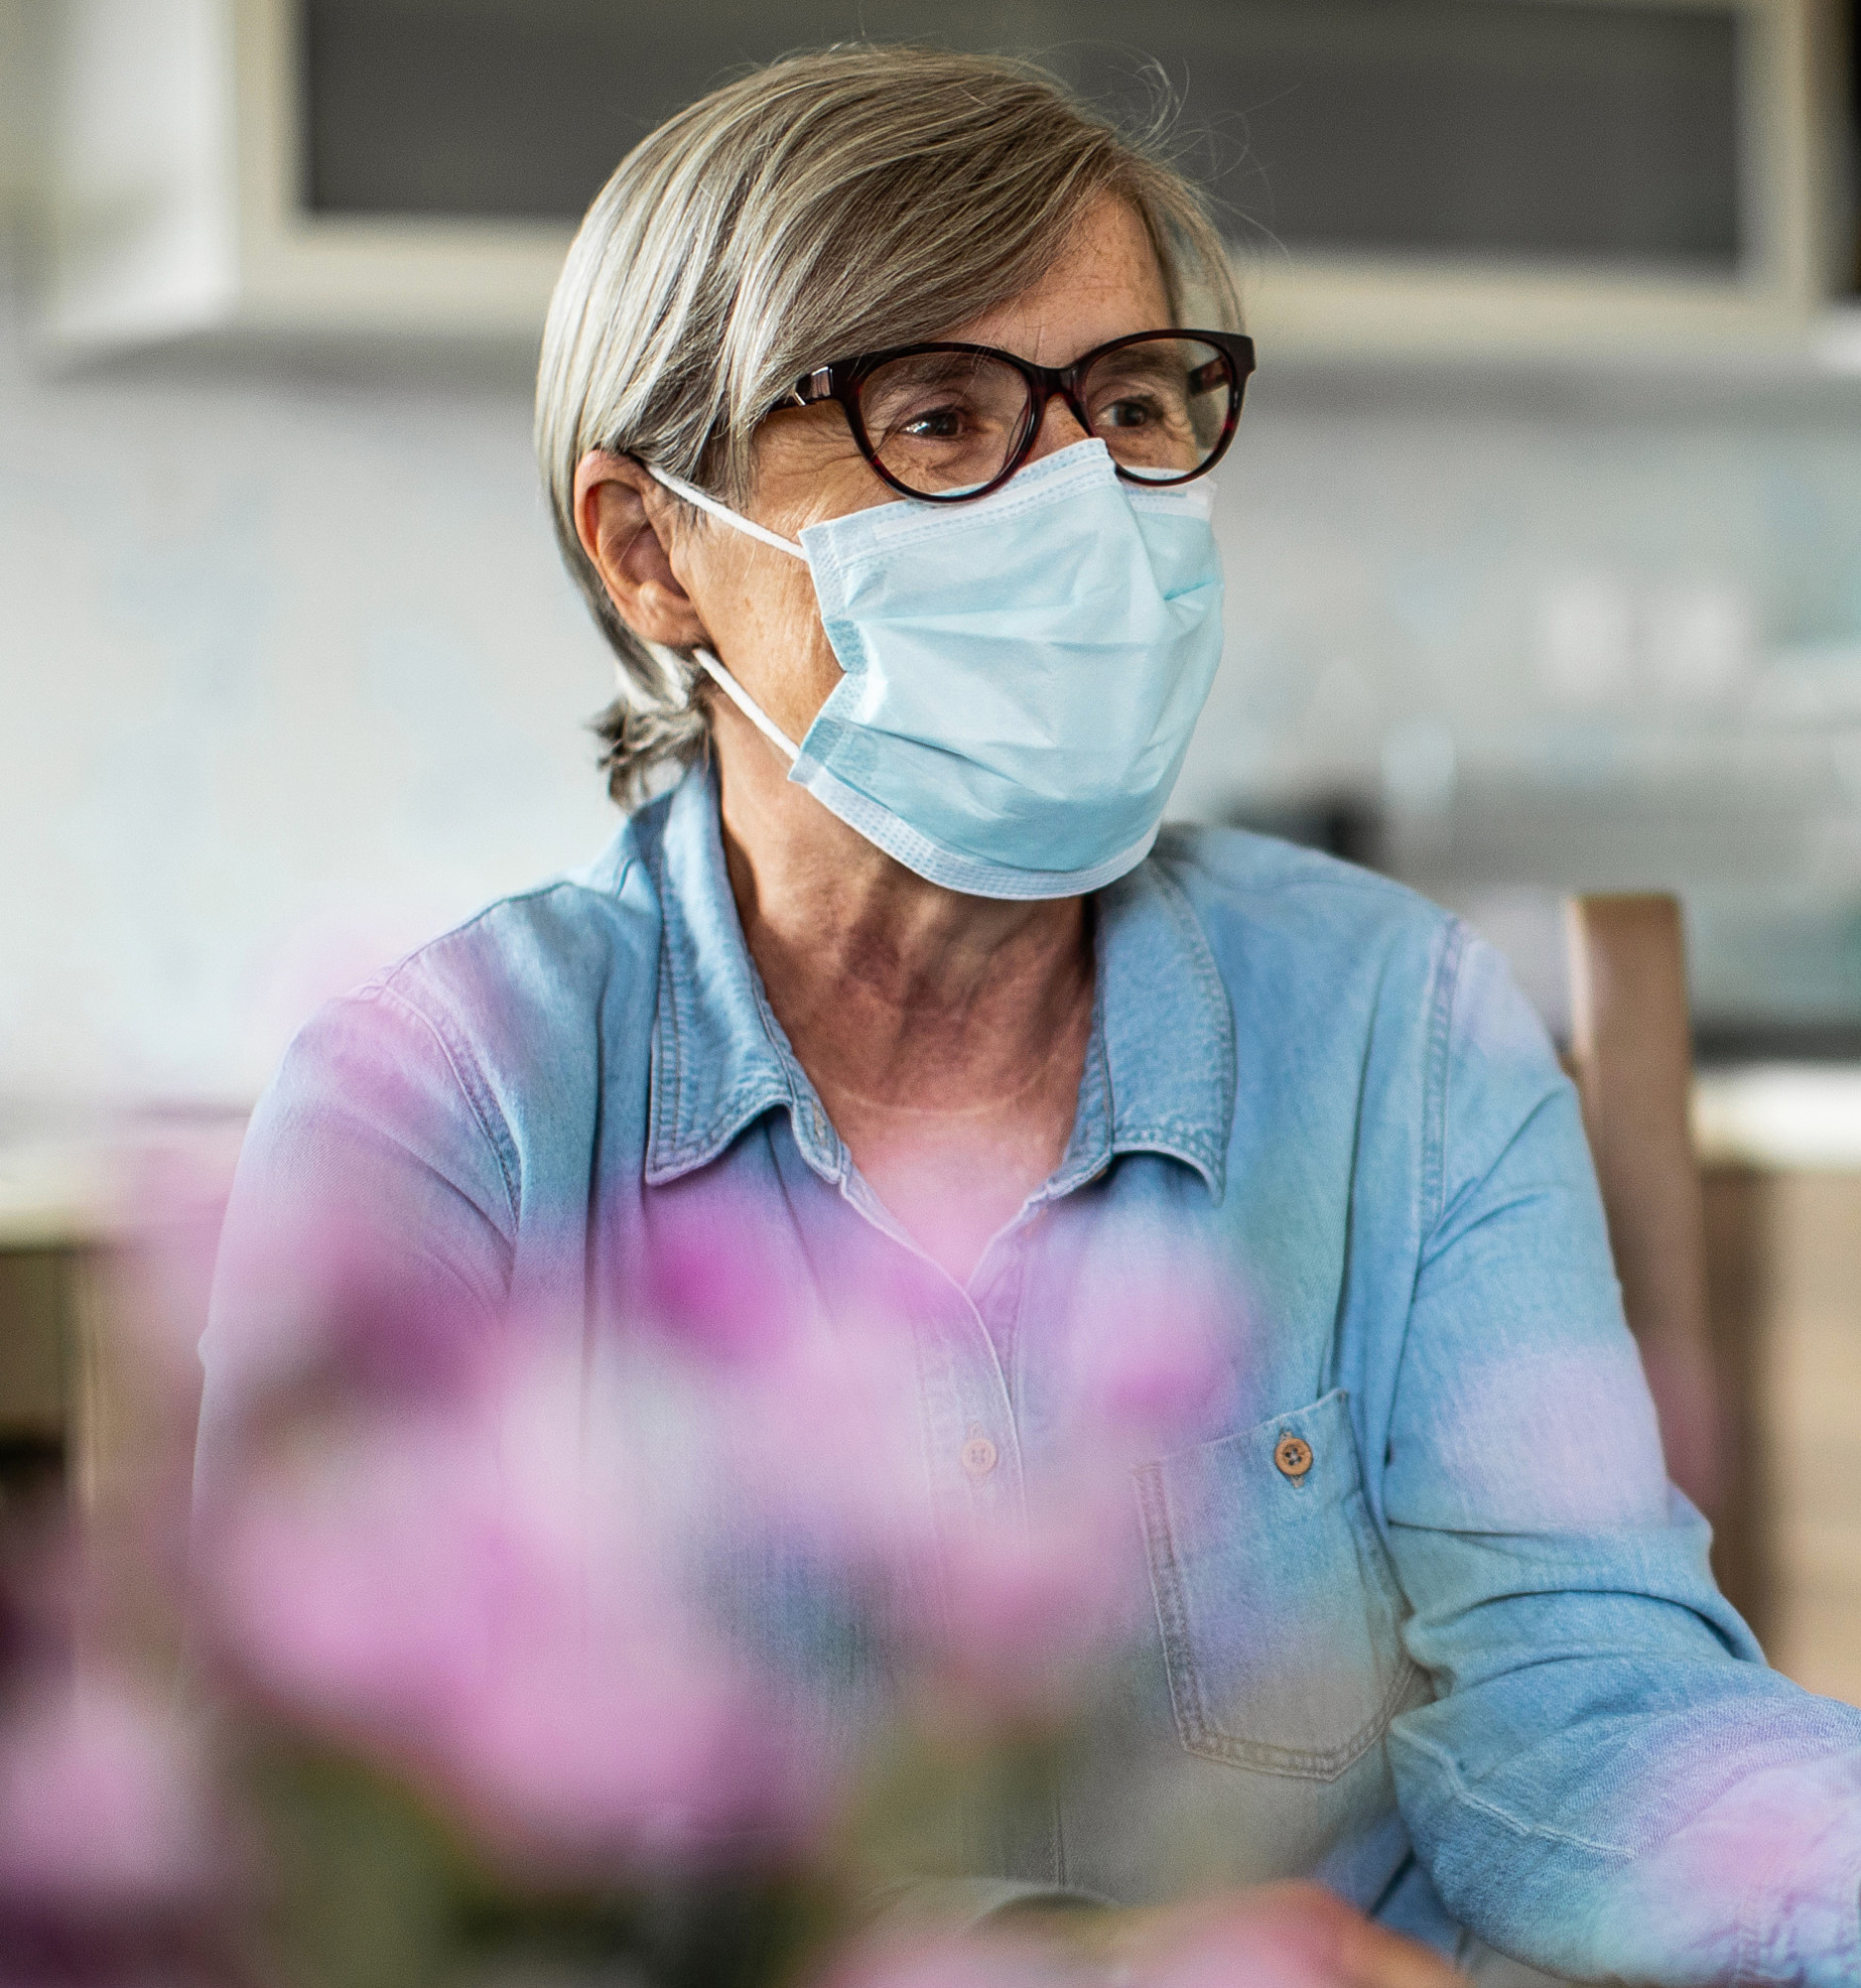 Healthcare Worker On A Home Visit